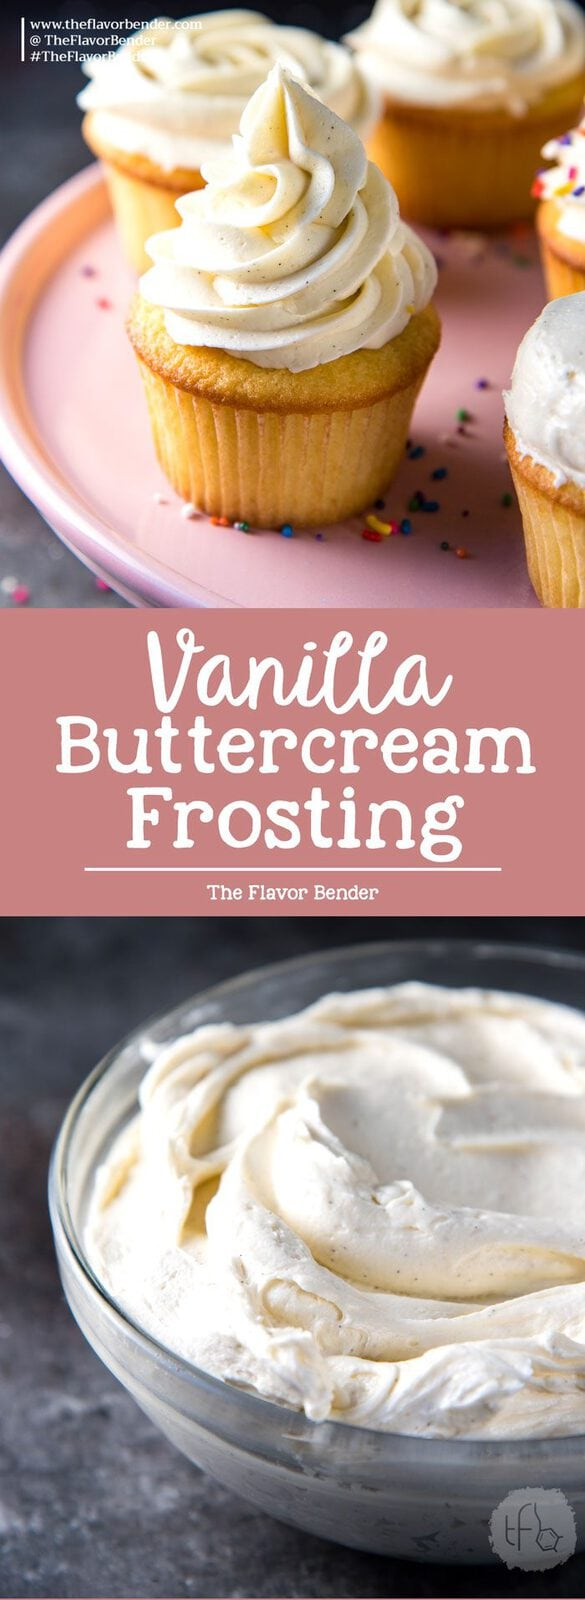 Perfect Vanilla Buttercream Frosting - creamy, fluffy, sweet, buttery, melt in your mouth frosting that is perfect to slather on anything.